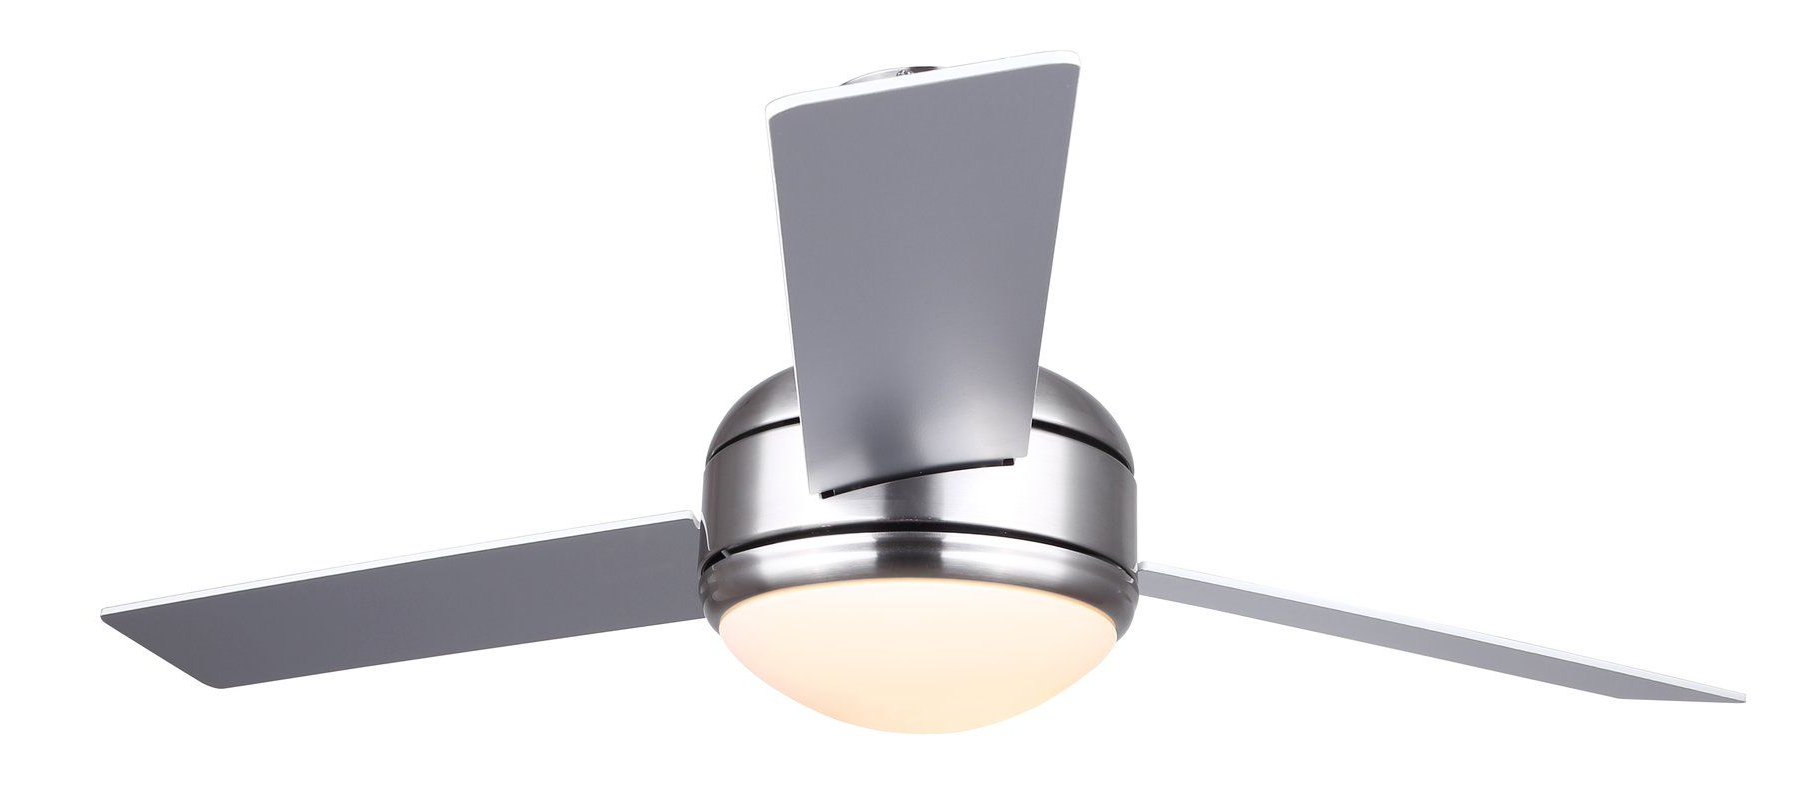 """48"""" Dennis 3 Blade Ceiling Fan With Remote, Light Kit Intended For 2019 Bernabe 3 Blade Ceiling Fans (View 5 of 20)"""